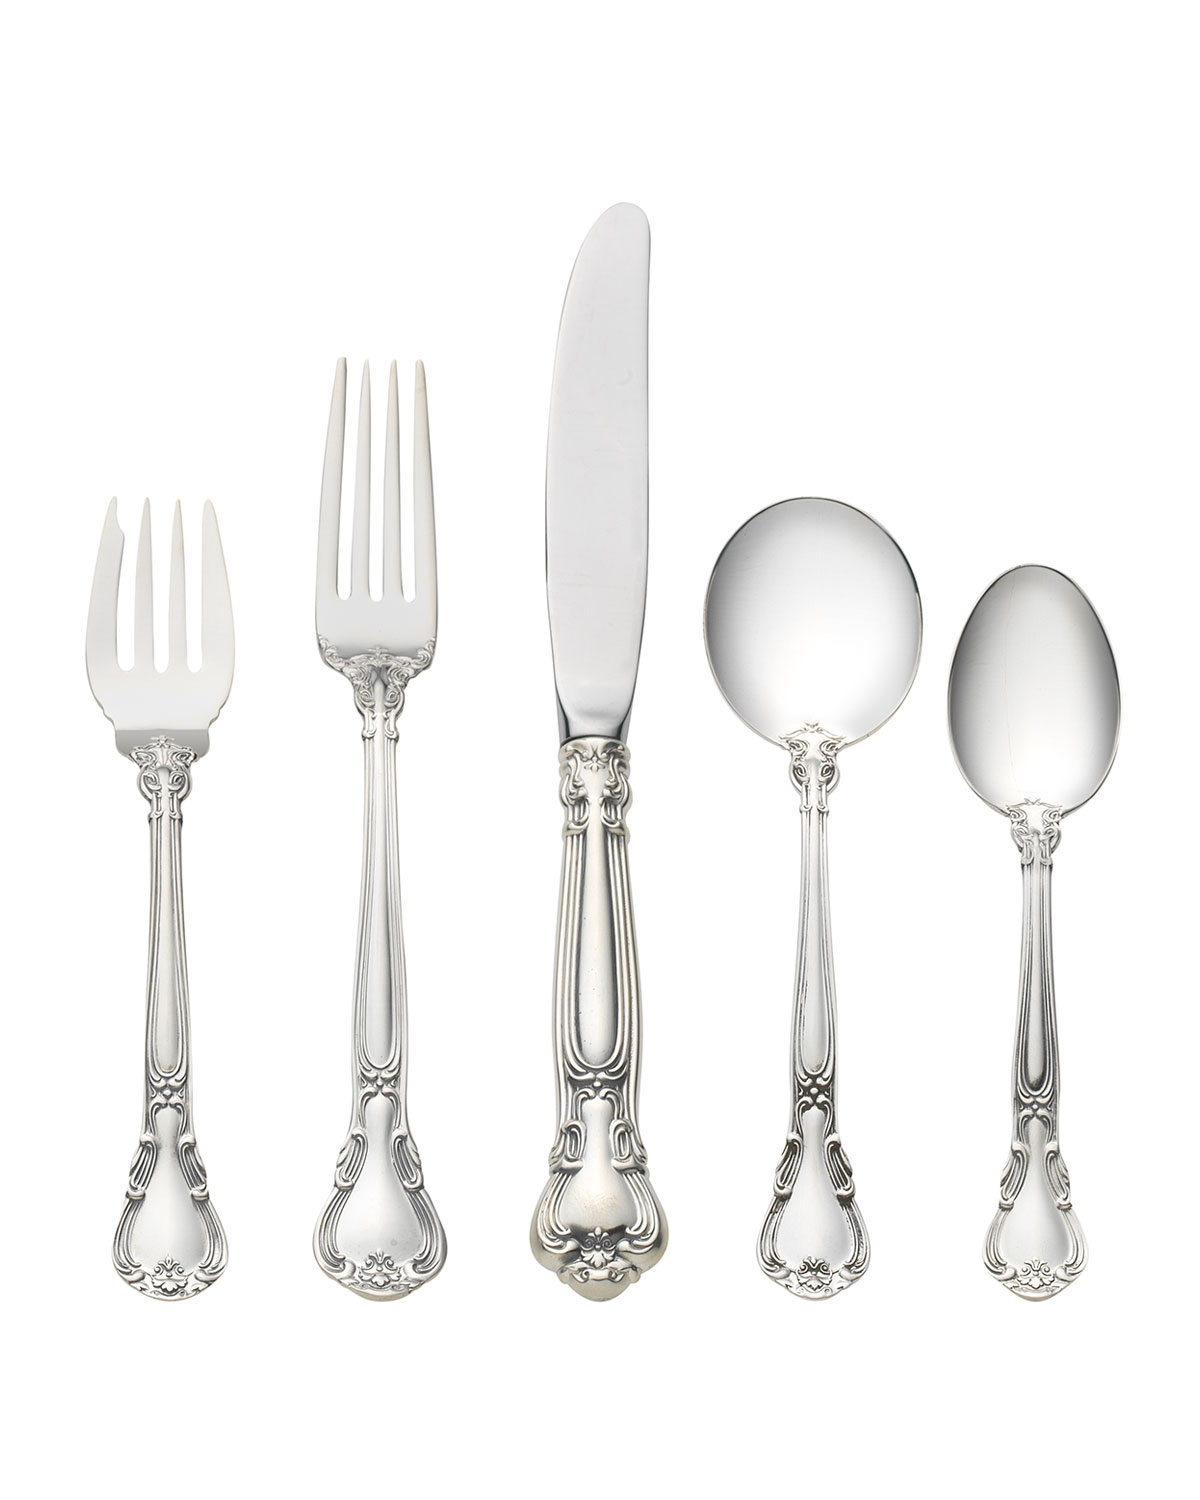 Gorham CHANTILLY 5-PIECE FLATWARE SETTING WITH CREAM SOUP SPOON